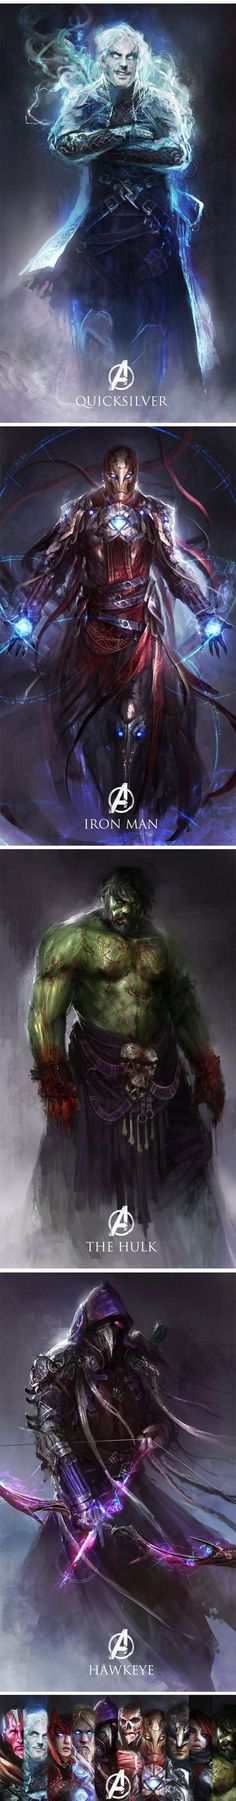 Age Of Ultron Characters Re-imagined As Medieval Fantasy: